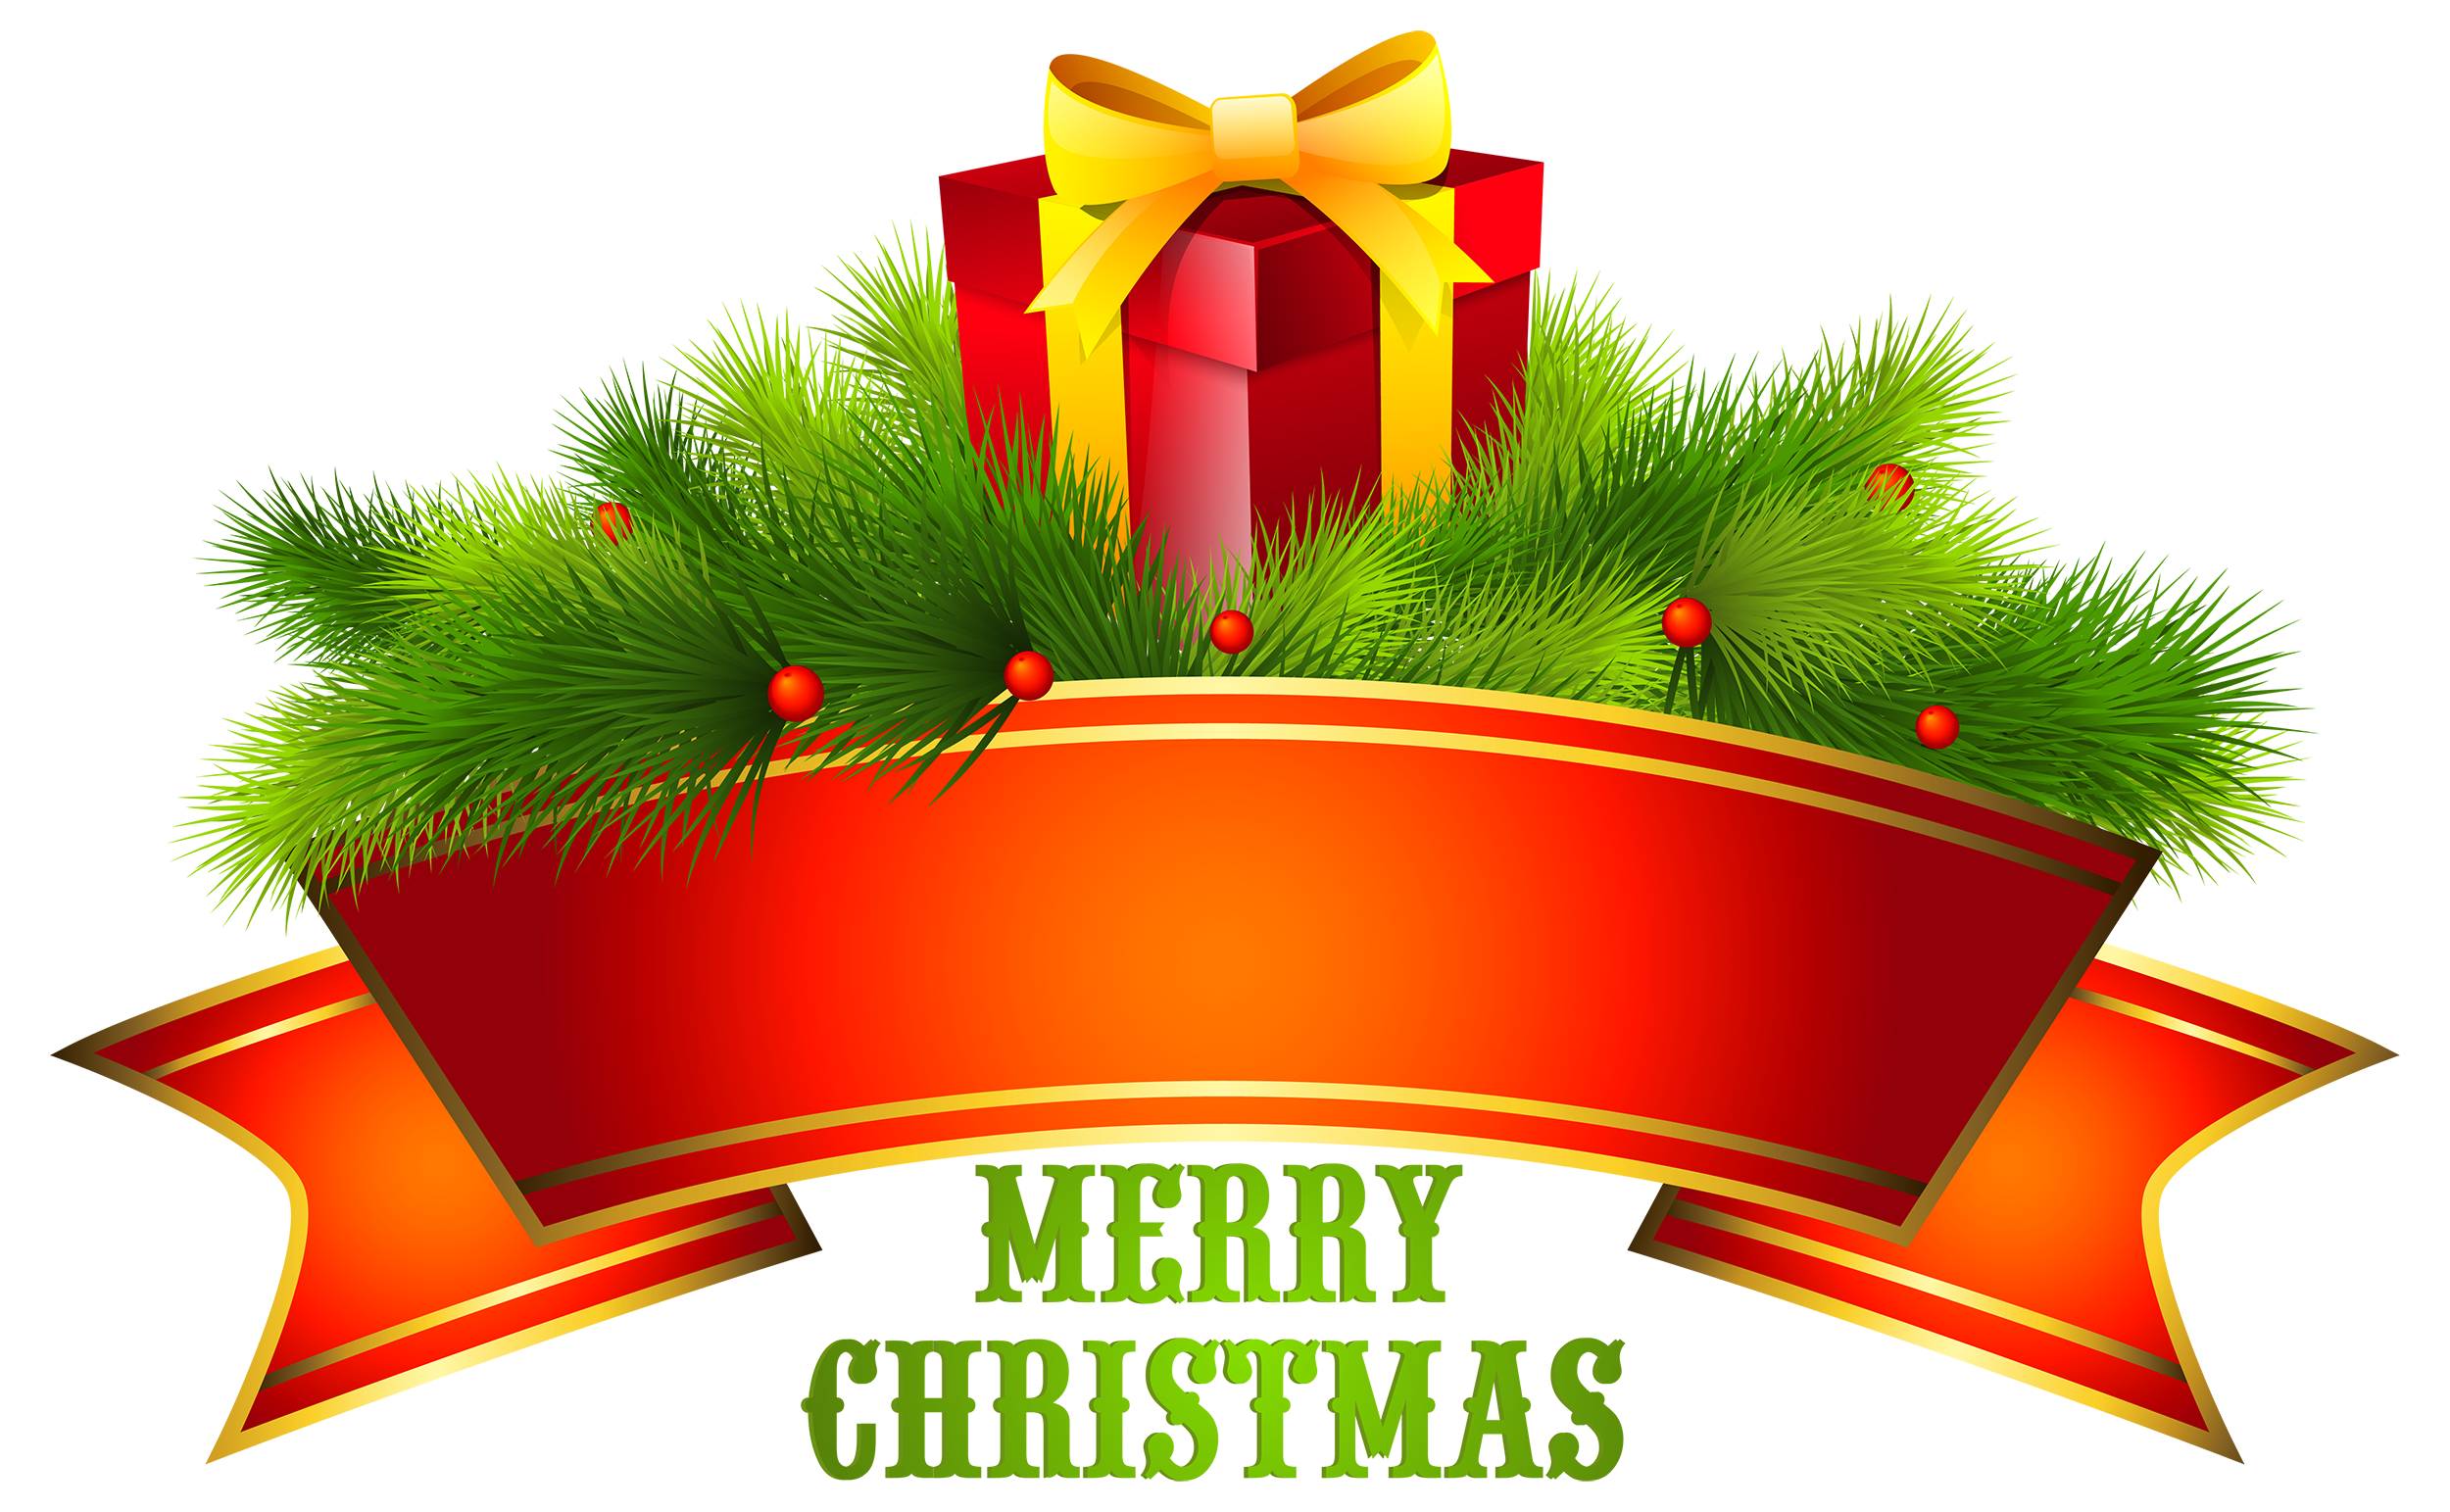 Merry Christmas Text Decor PNG Clipart.